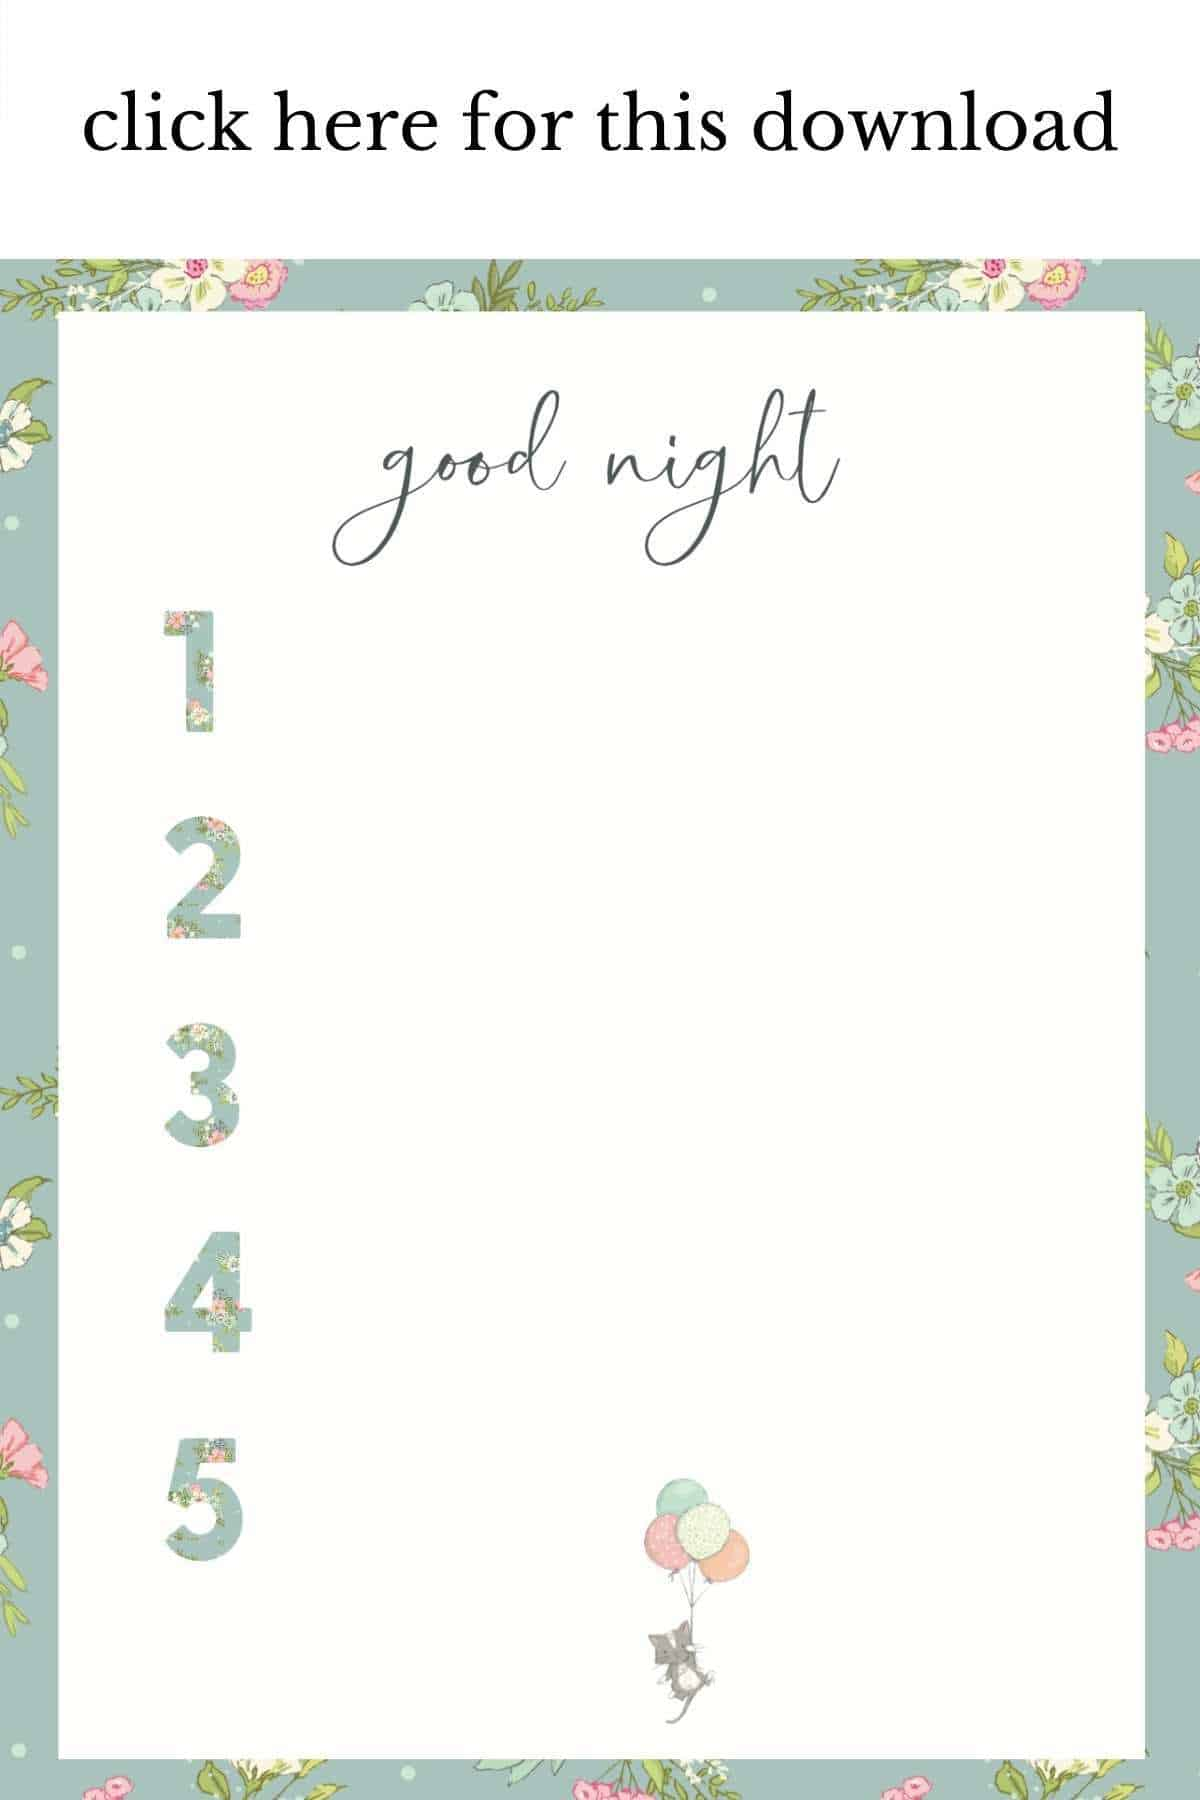 blue floral good night chore printable with kitten holding balloons